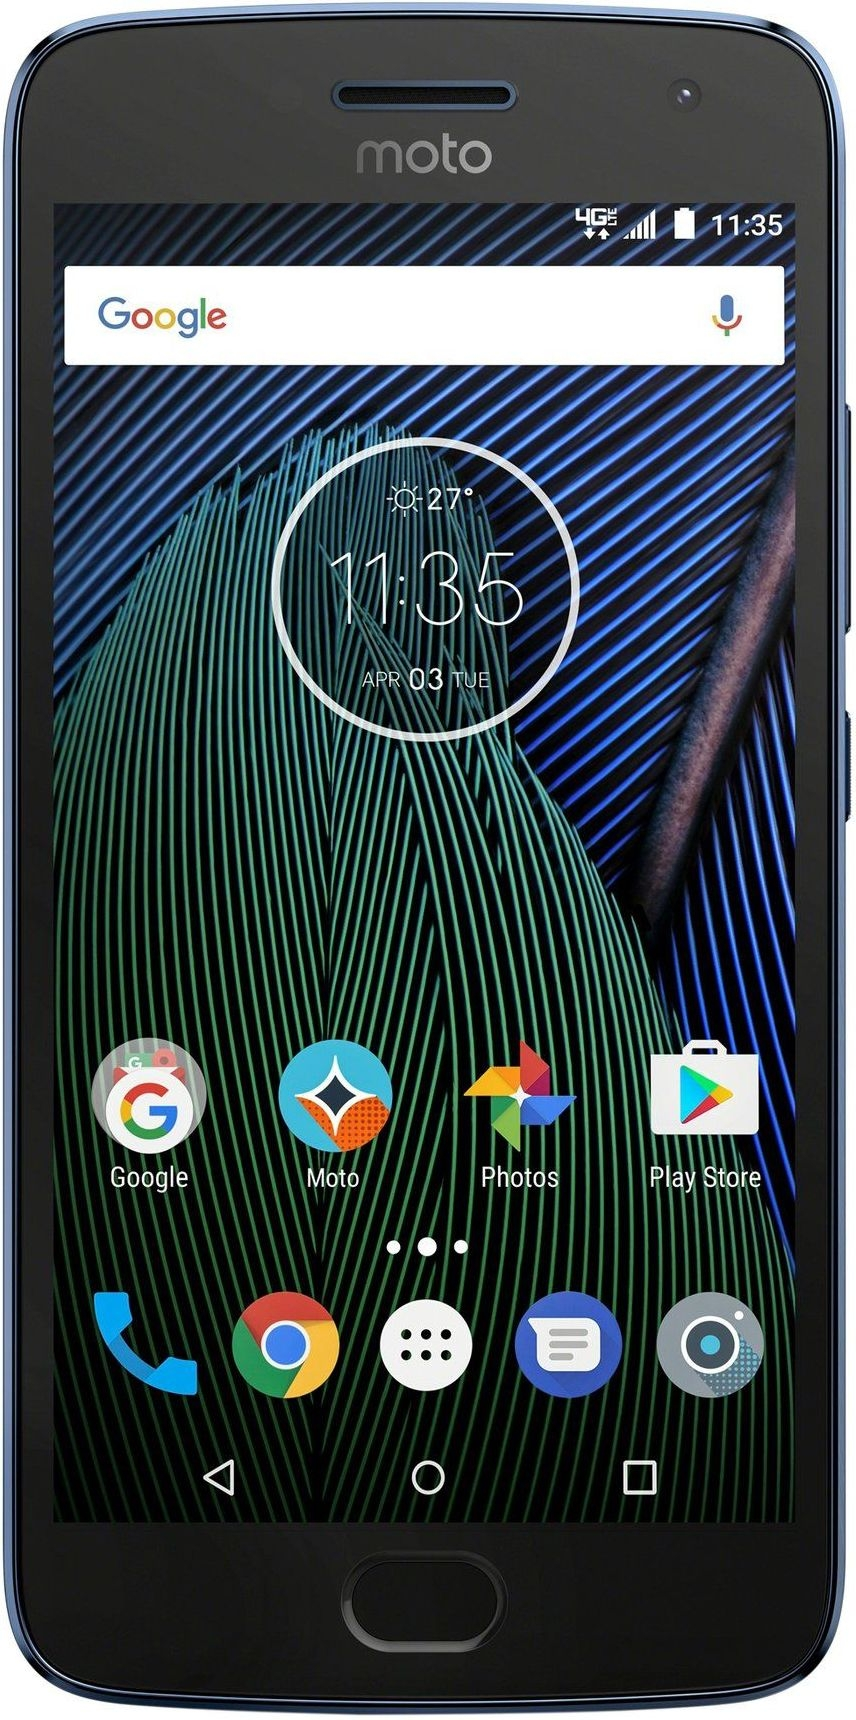 Download Android games for Motorola Moto G5sfor free